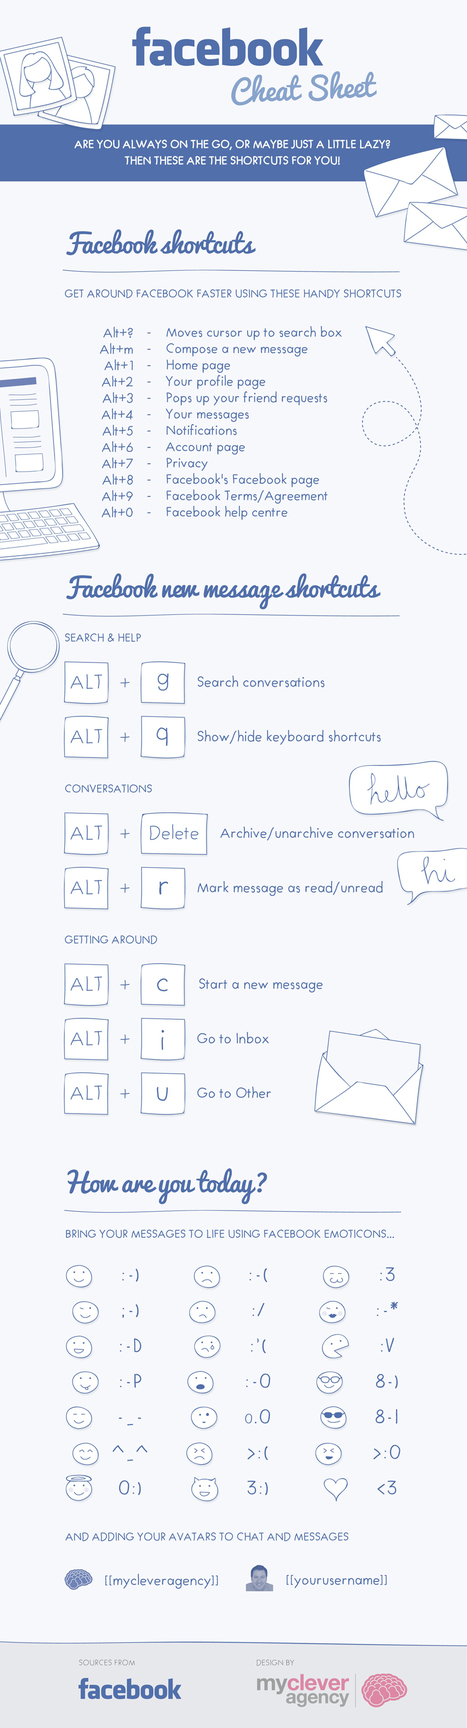 Network Faster With Facebook Shortcuts [Cheat Sheet] | Digital-News on Scoop.it today | Scoop.it